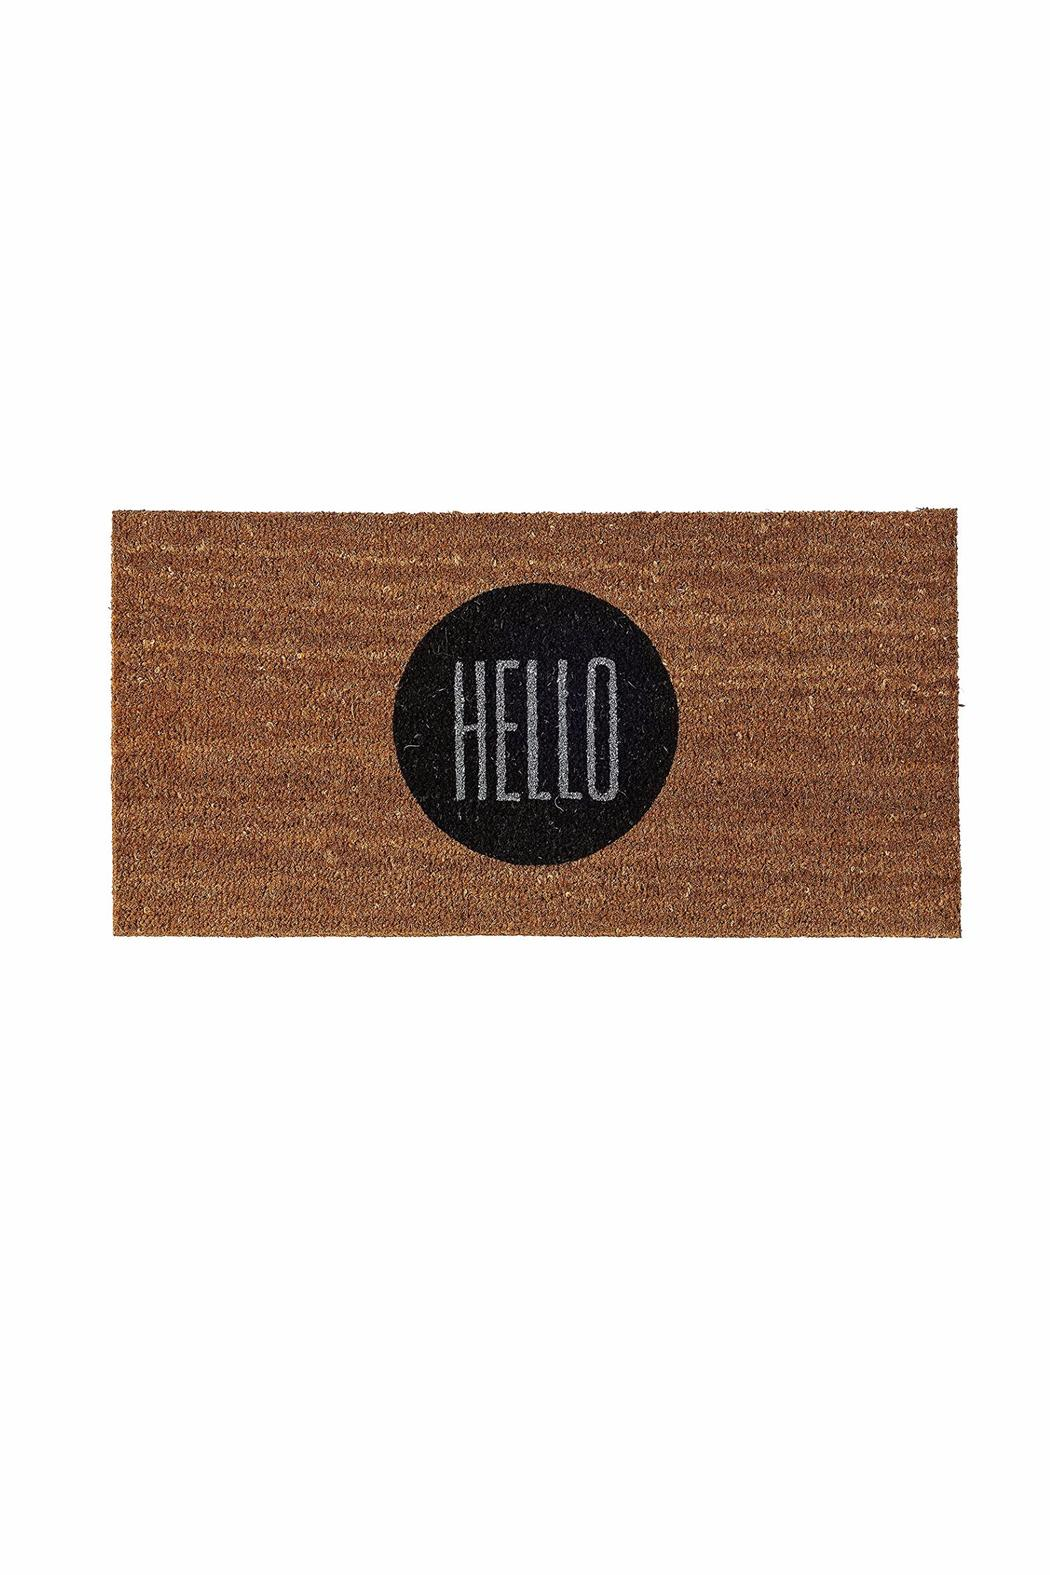 Bloomingville Hello Door Mat - Front Cropped Image  sc 1 st  Shoptiques & Bloomingville Hello Door Mat from Buffalo by Ro u2014 Shoptiques pezcame.com